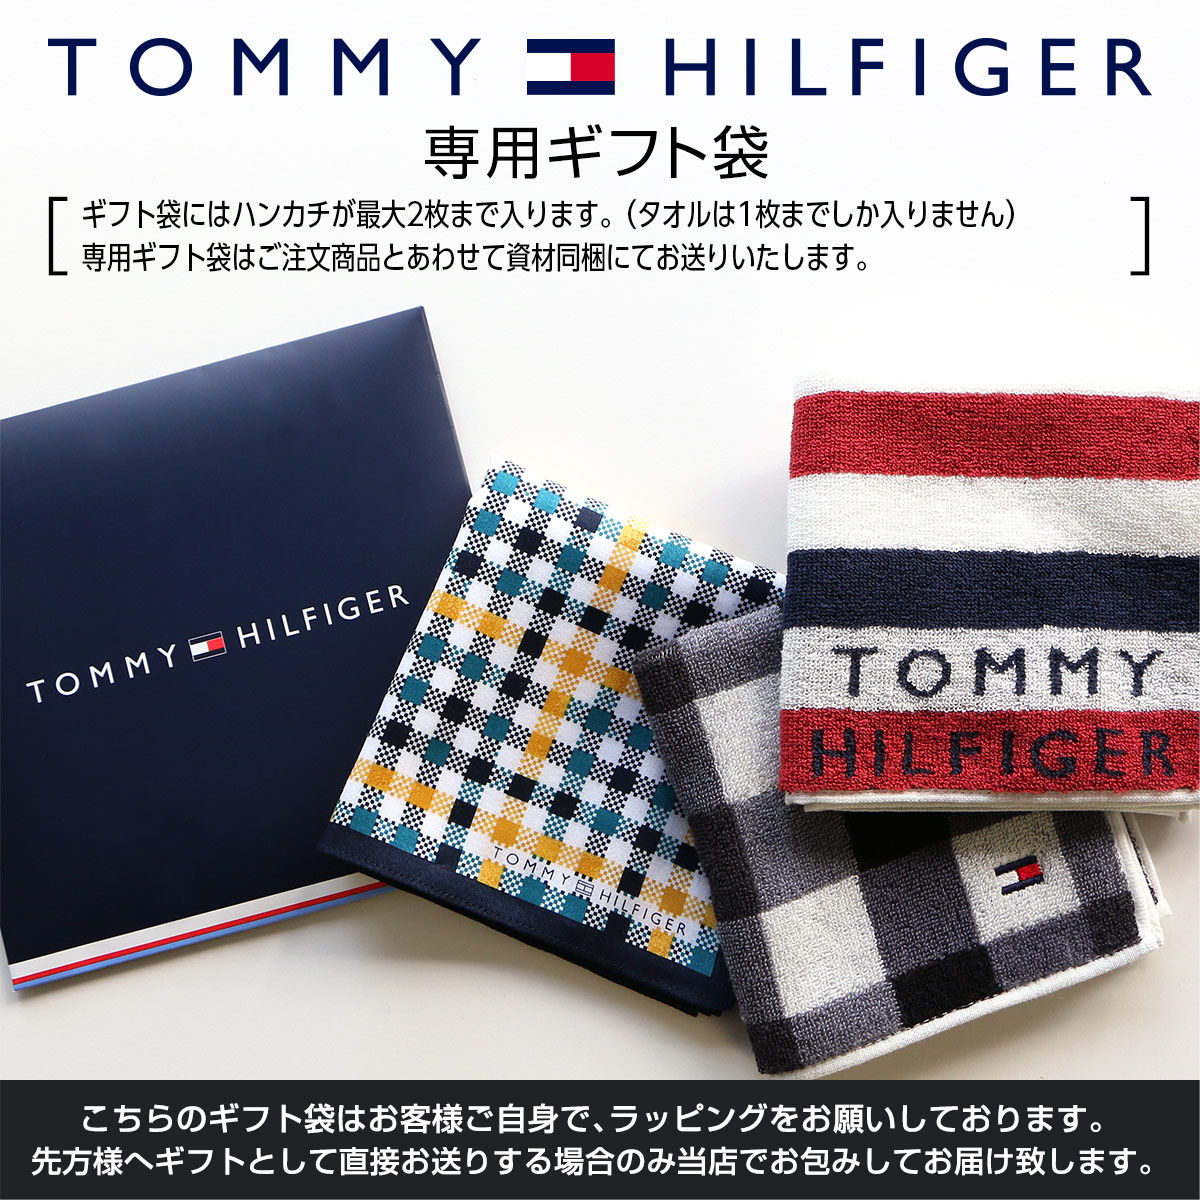 TOMMY HILFIGER トミーヒルフィガー 綿100% ハンカチ Hロゴ×ドット柄 プレゼント 贈答 ギフト 02582151 プレゼント ギフト【ゆうパケット・4点まで】